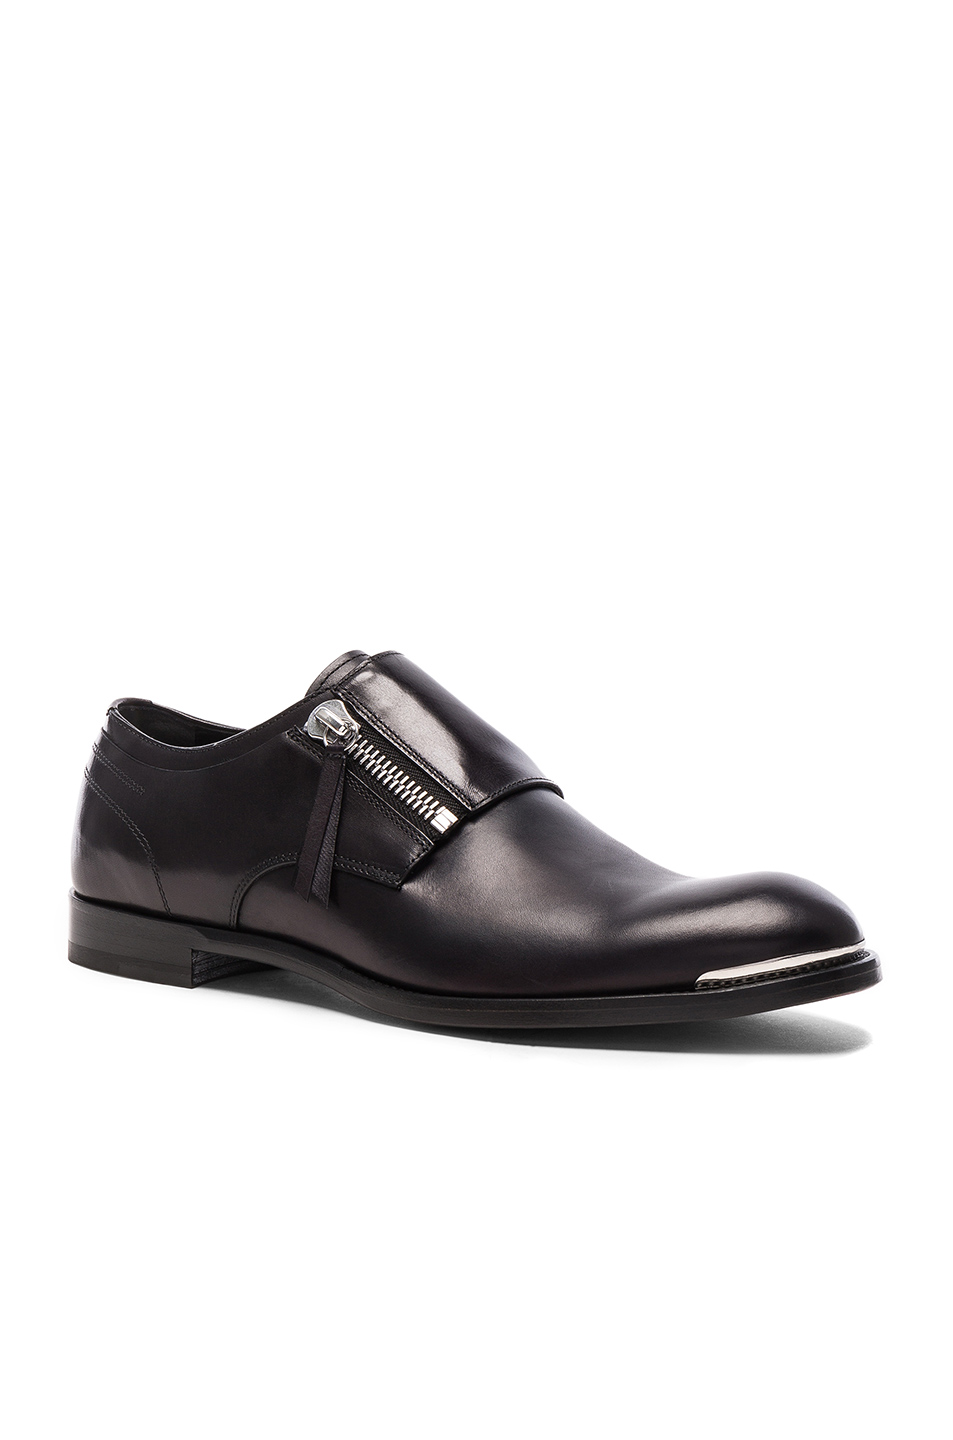 Alexander McQueen Zip Leather Dress Shoes in Black